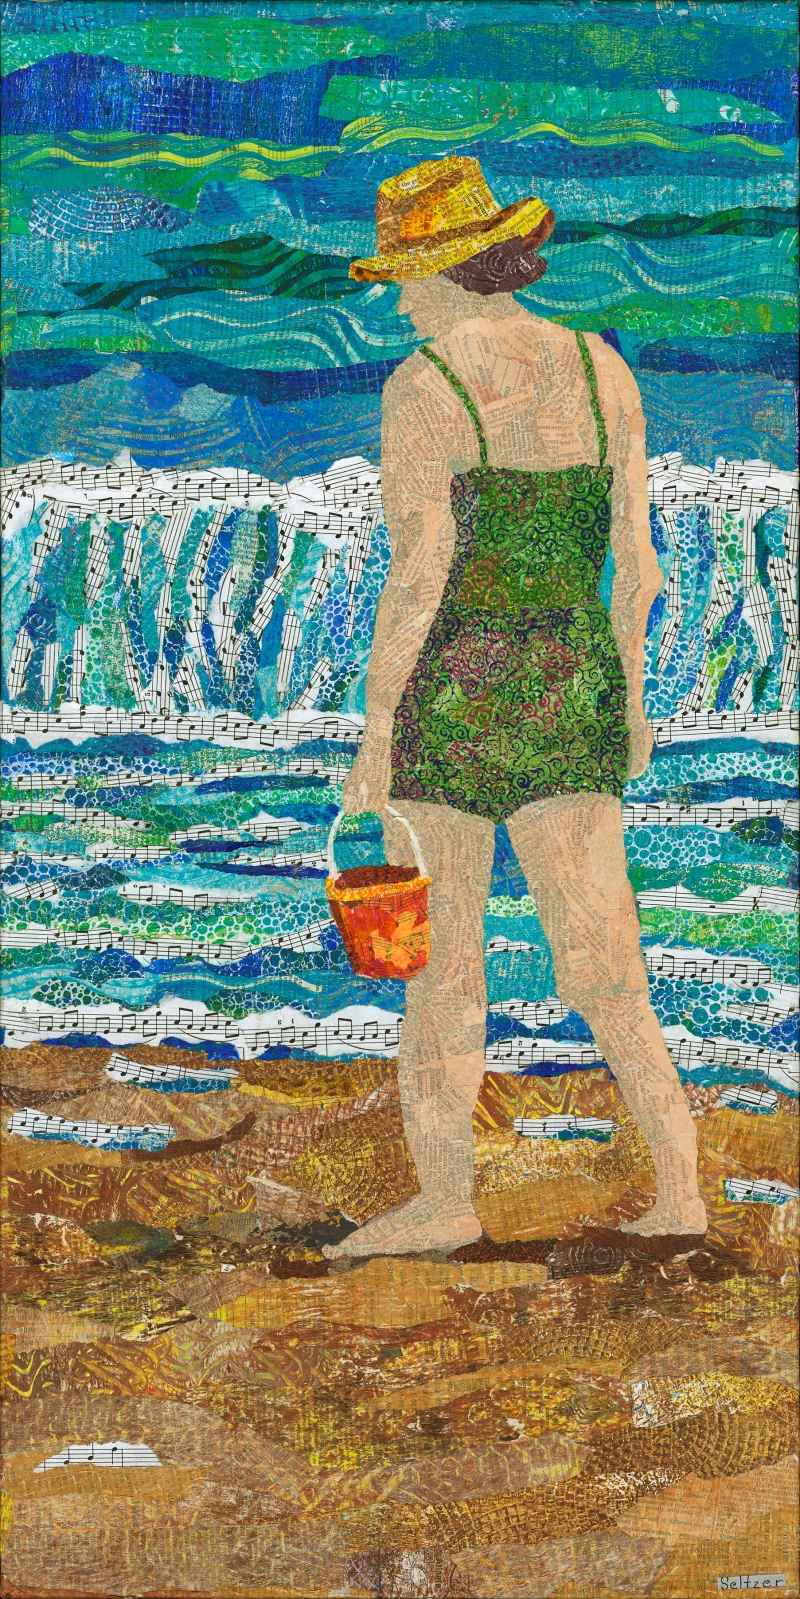 Woman collecting shells along the shore line